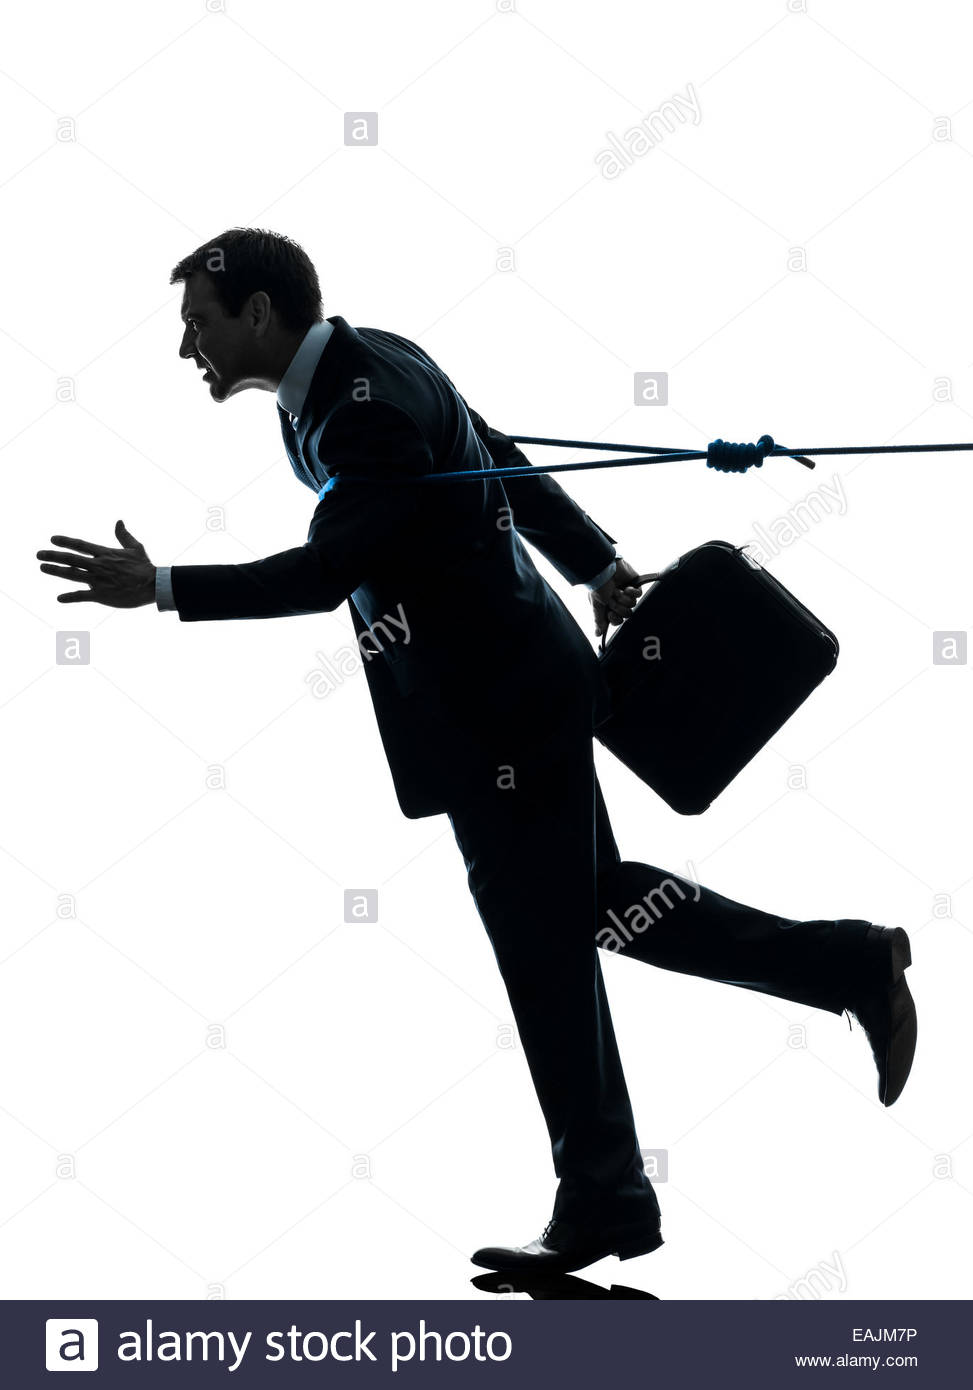 973x1390 One Business Man Catched By Lasso Rope In Silhouette Studio